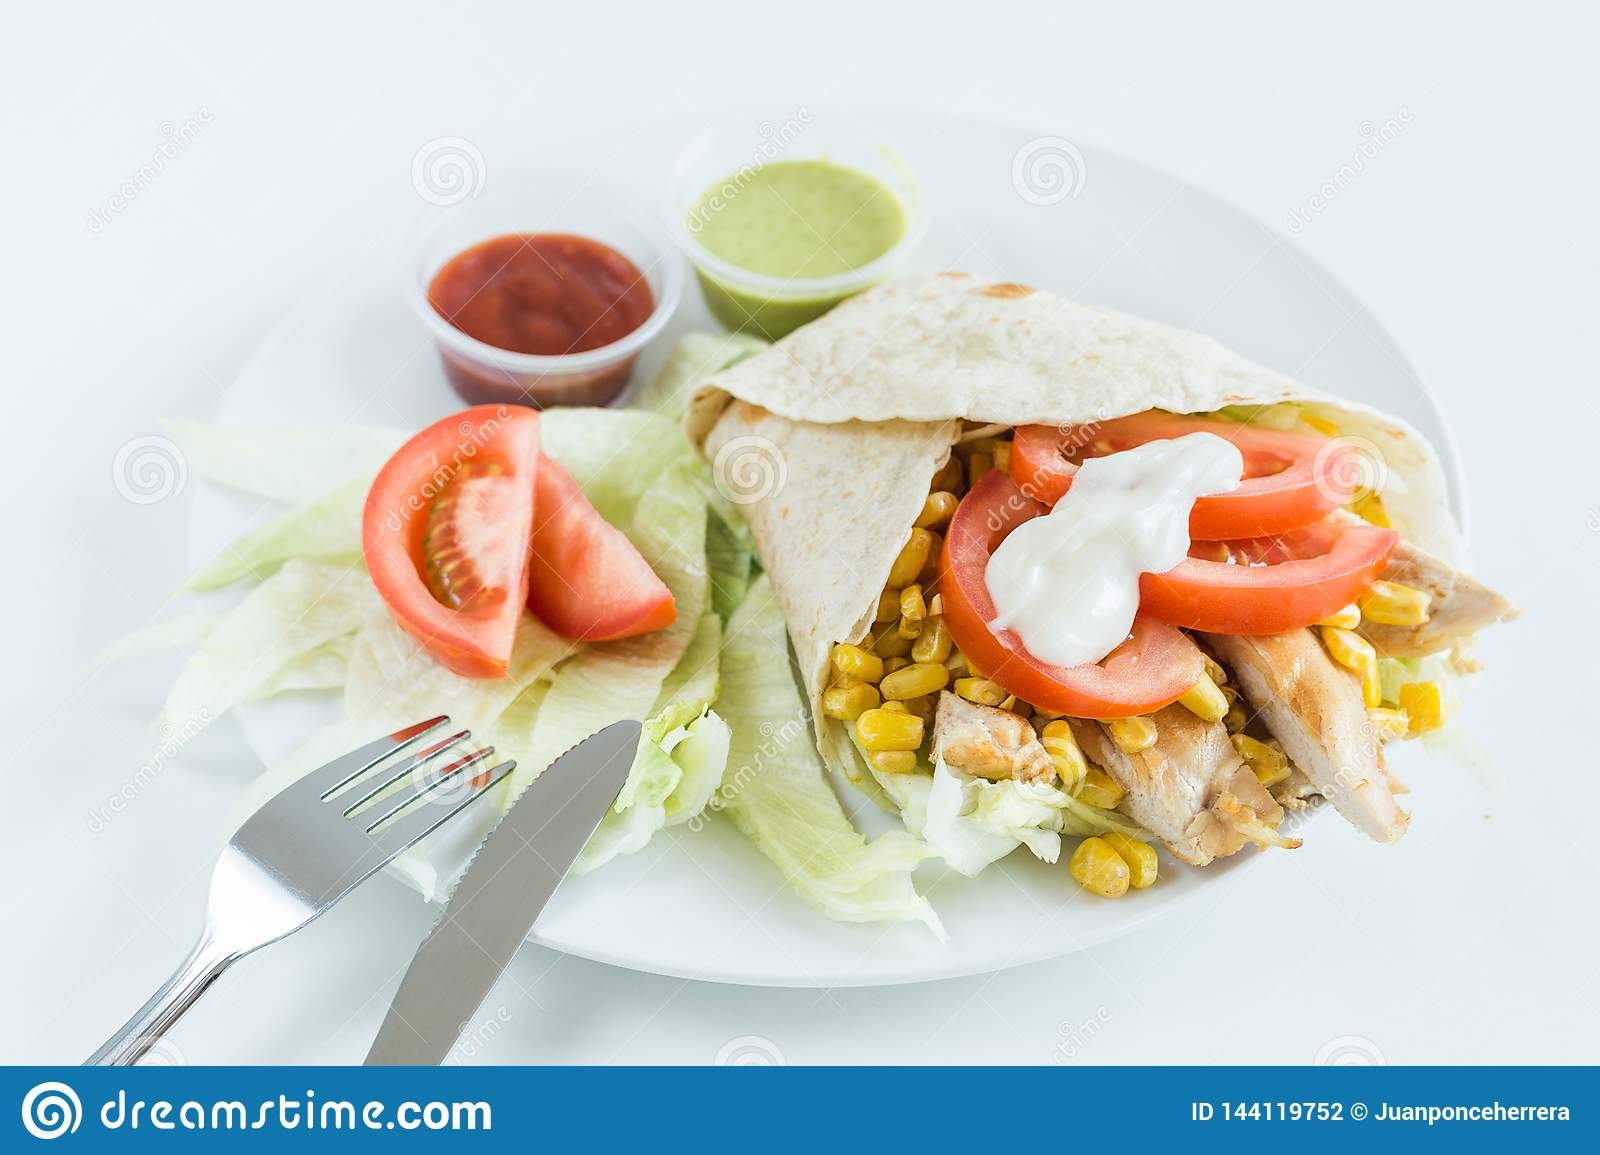 Burrito wrap with tomato, corn, lettuce, chicken, mayonnaise and sauces with white background